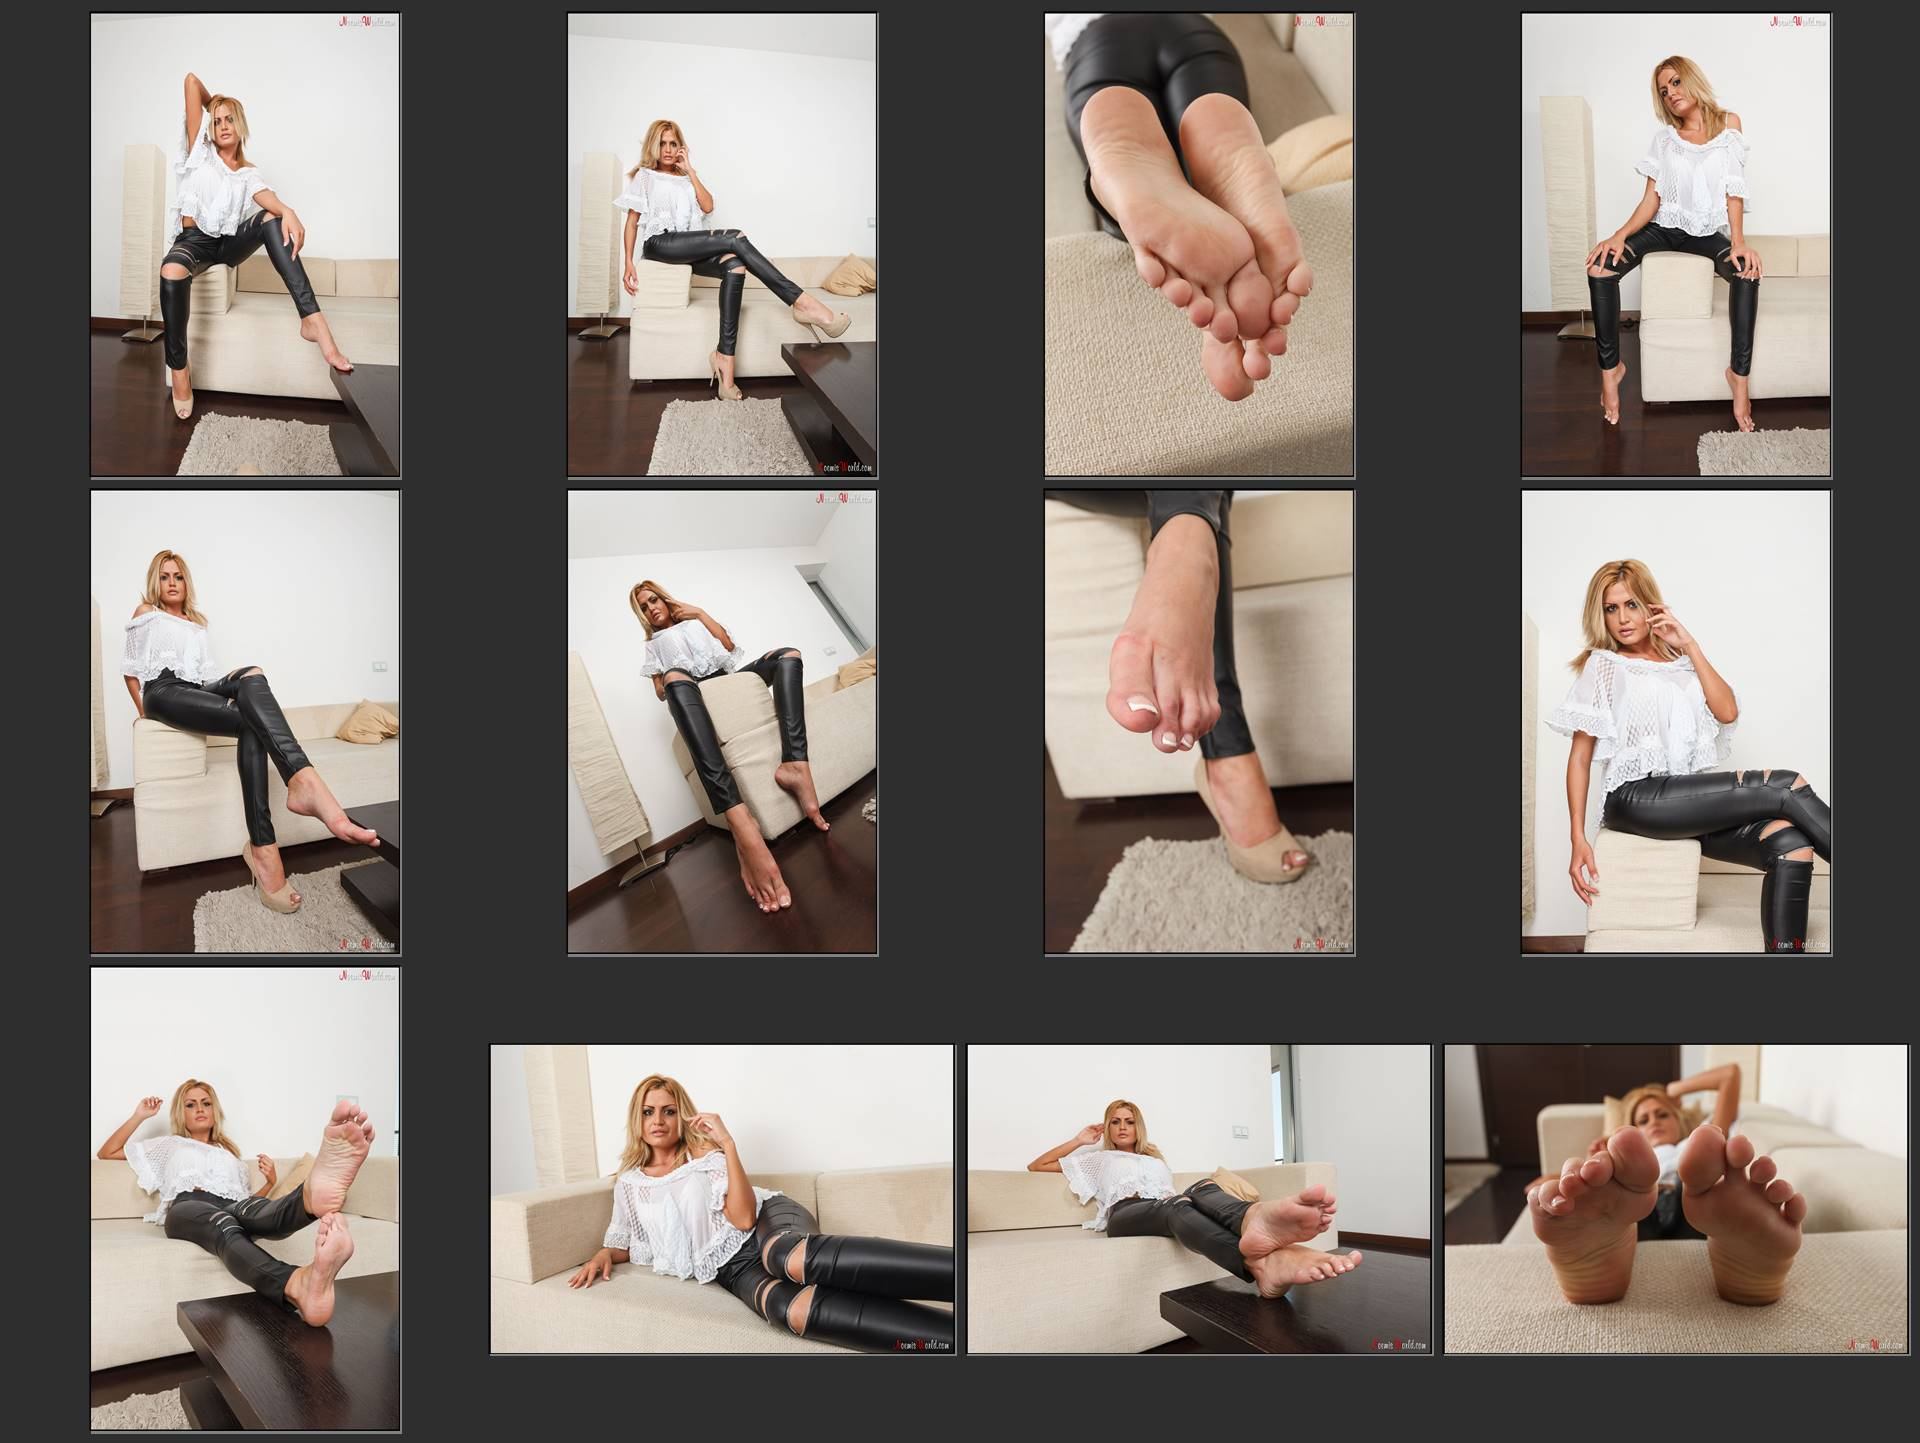 Noemi's World - Madeline - You should taste her french pedicured toes! - Femdom Pictures